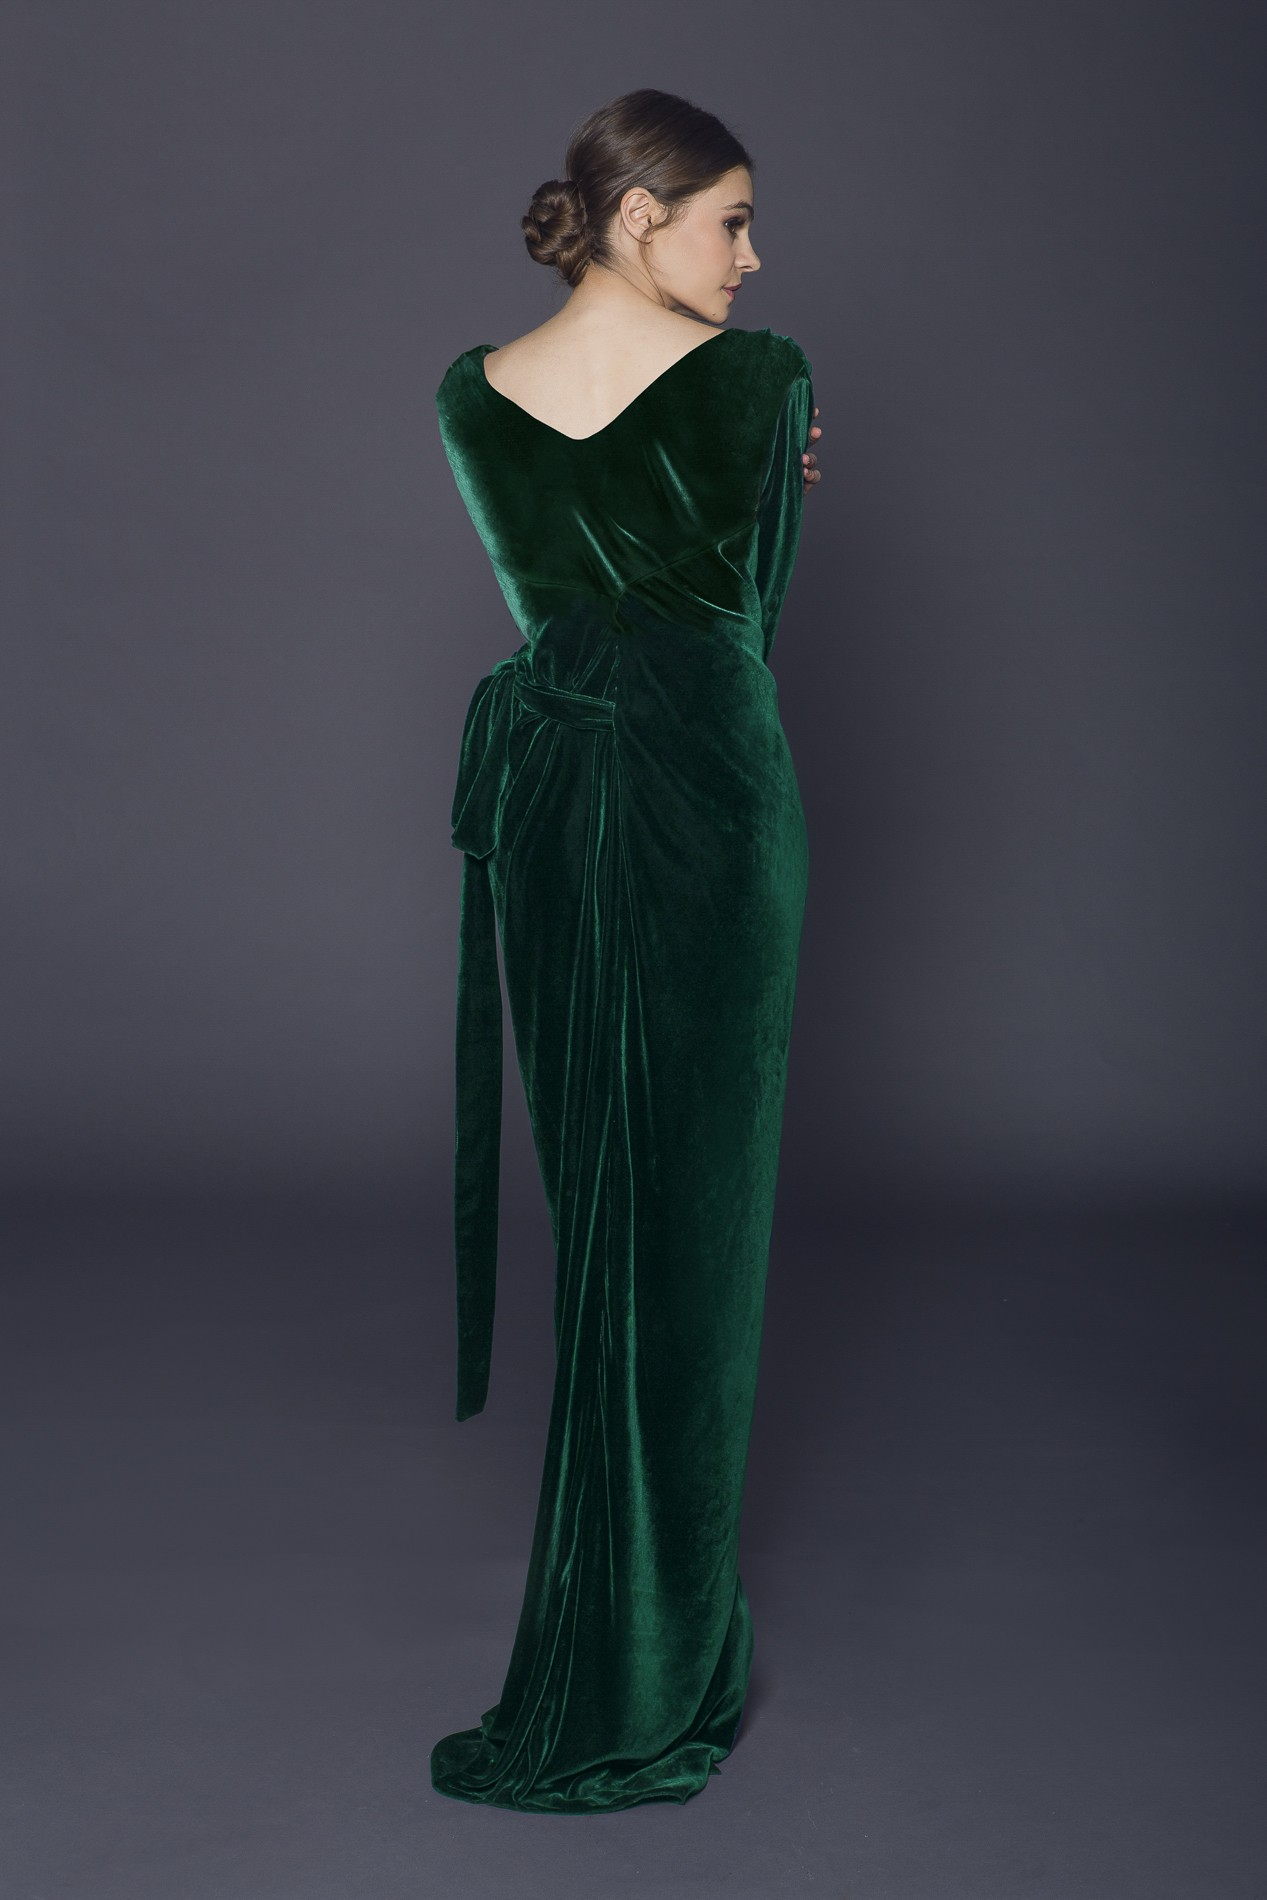 Silk Velvet Long Wraped Dress Rhea Costa Shop